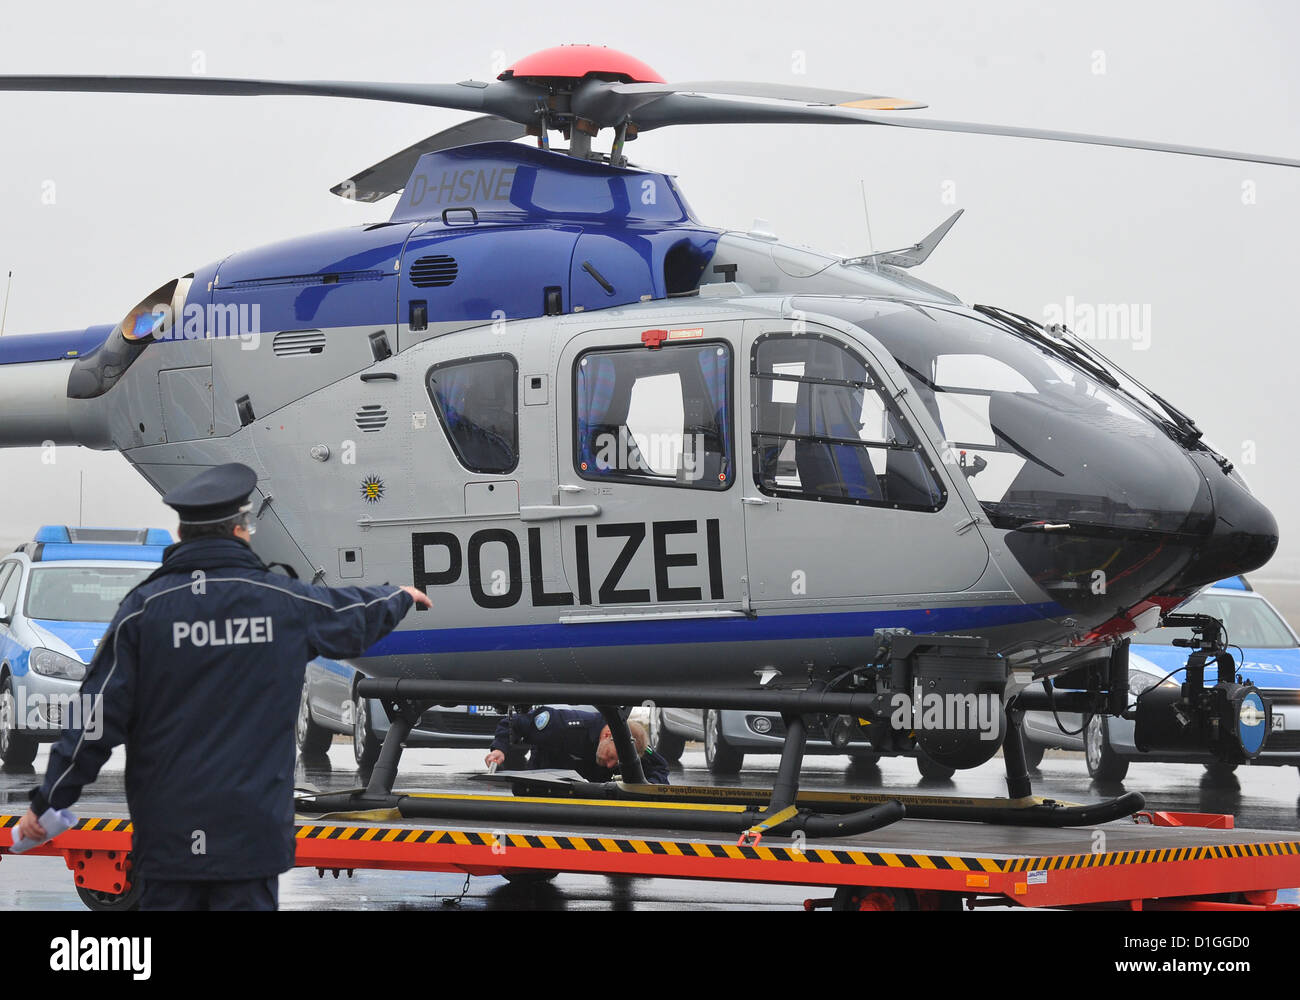 A police officer walks past the new EC 135 helicopter at the airport in Dresden, Germany, 19 December 2012. Saxony's - Stock Image